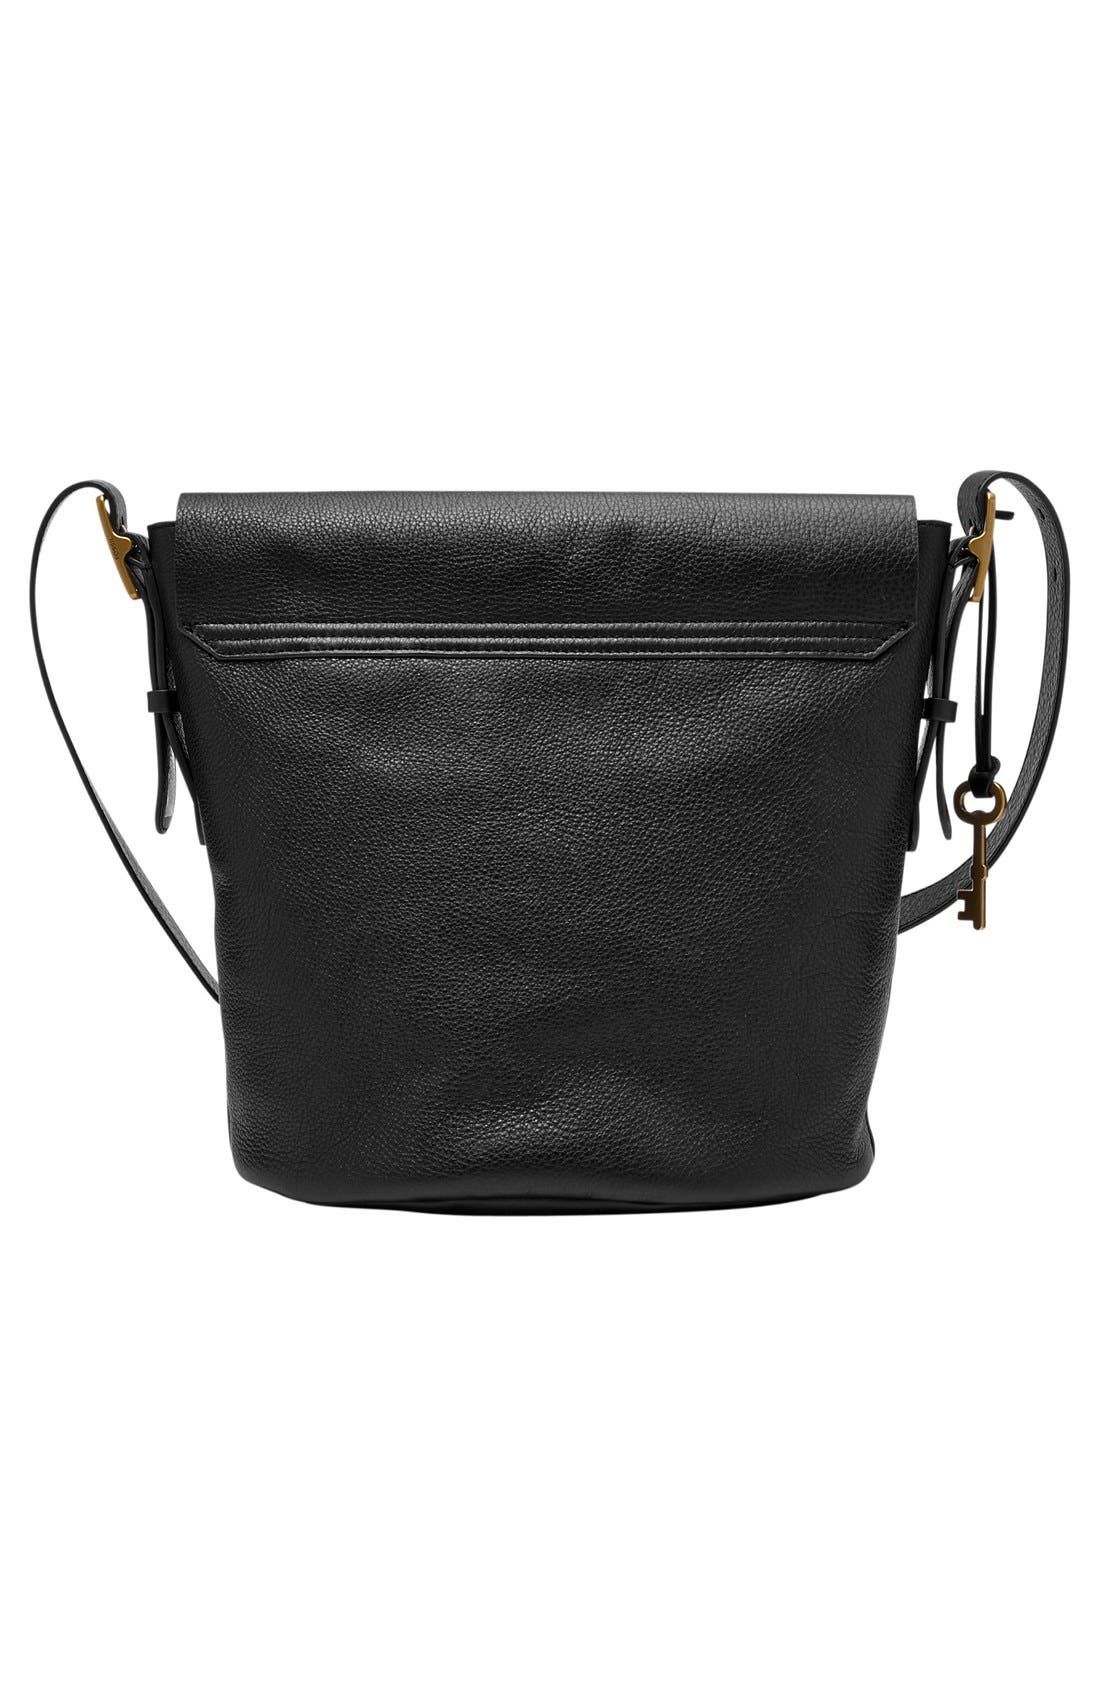 FOSSIL,                             'Haven' Leather Bucket Bag,                             Alternate thumbnail 3, color,                             001